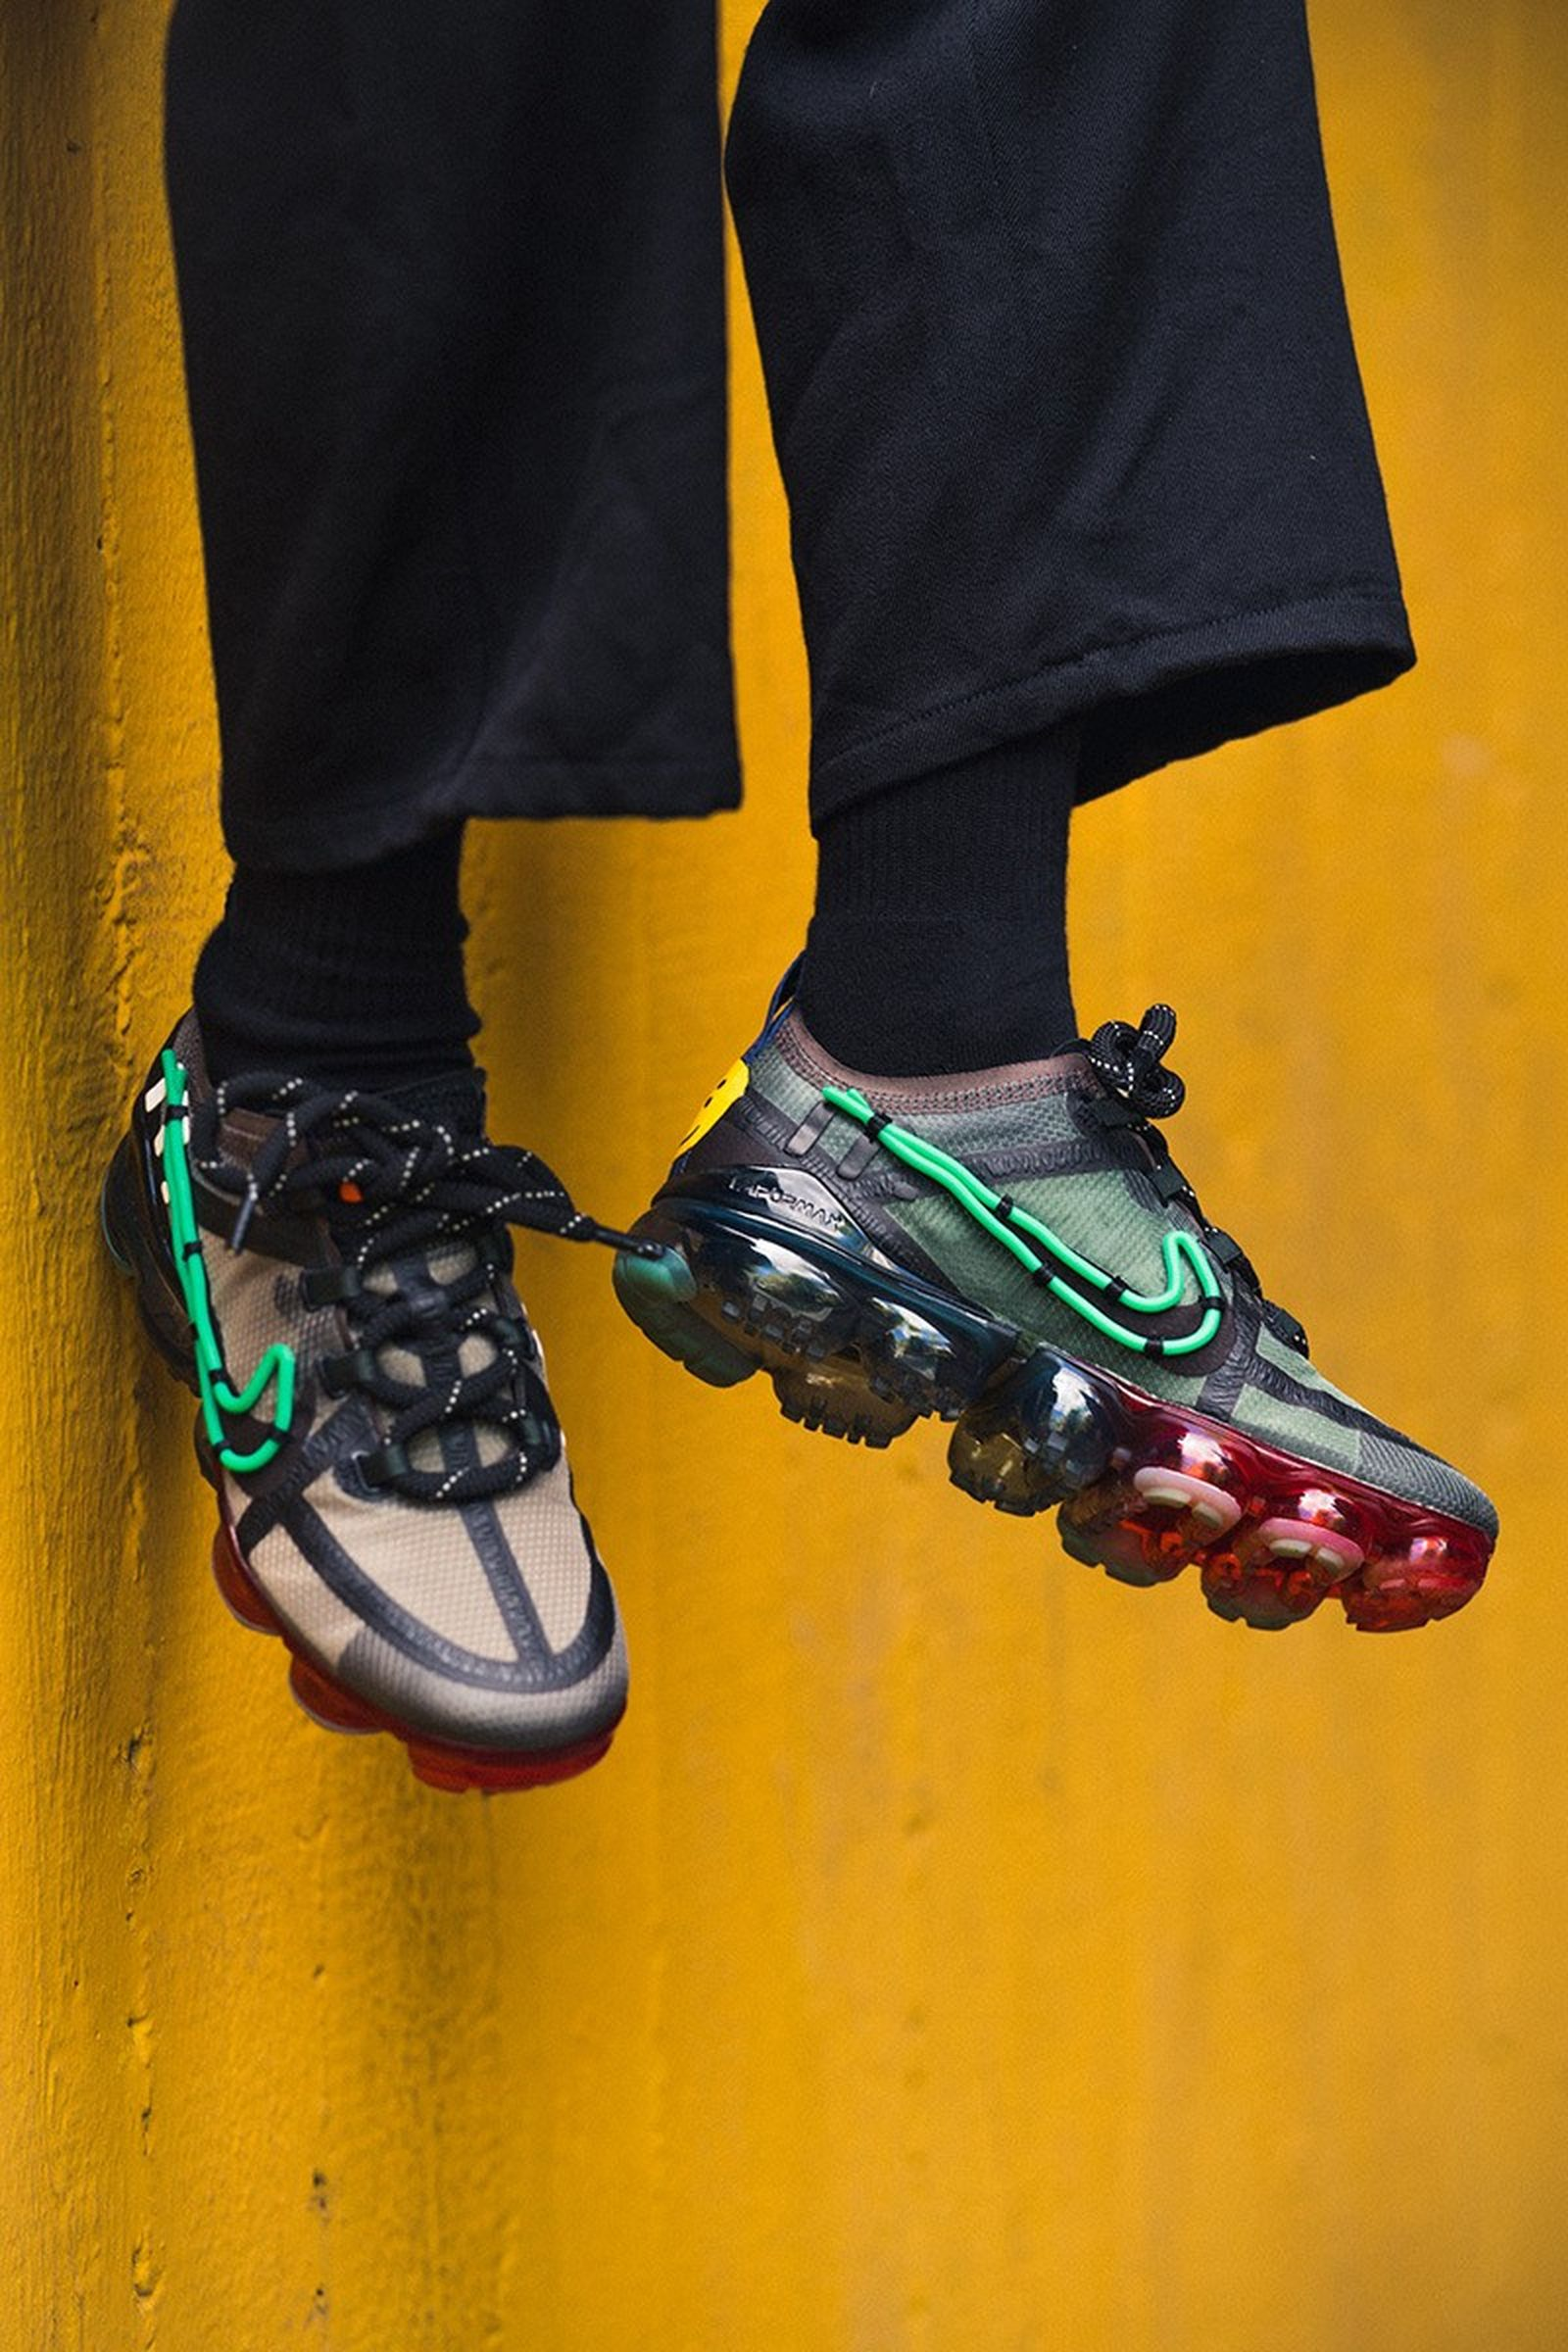 best sneakers 2019 nike vapormax CPFM Girls Don't Cry Martine Rose comme des garcons